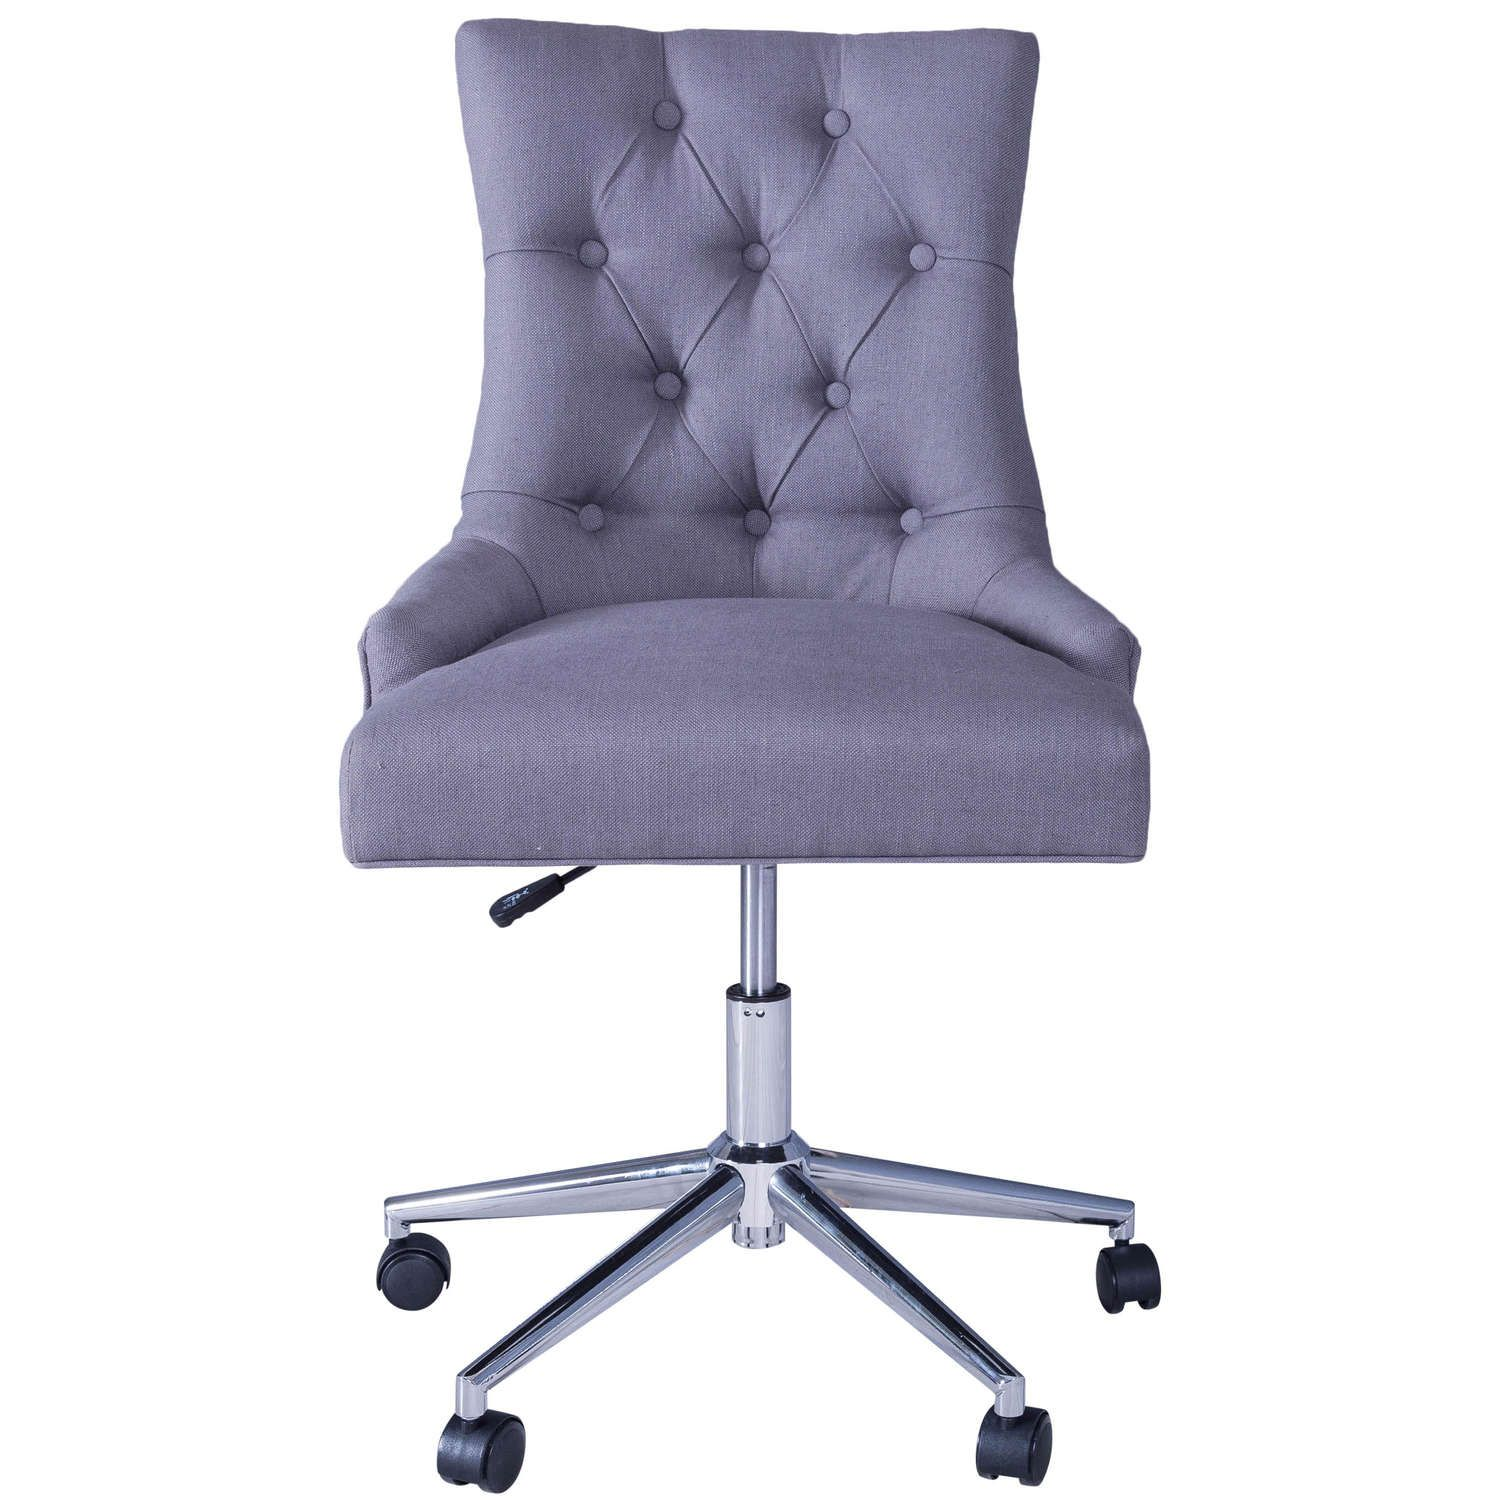 Jervaulx Chair Collection Button Back Office Chair Grey in